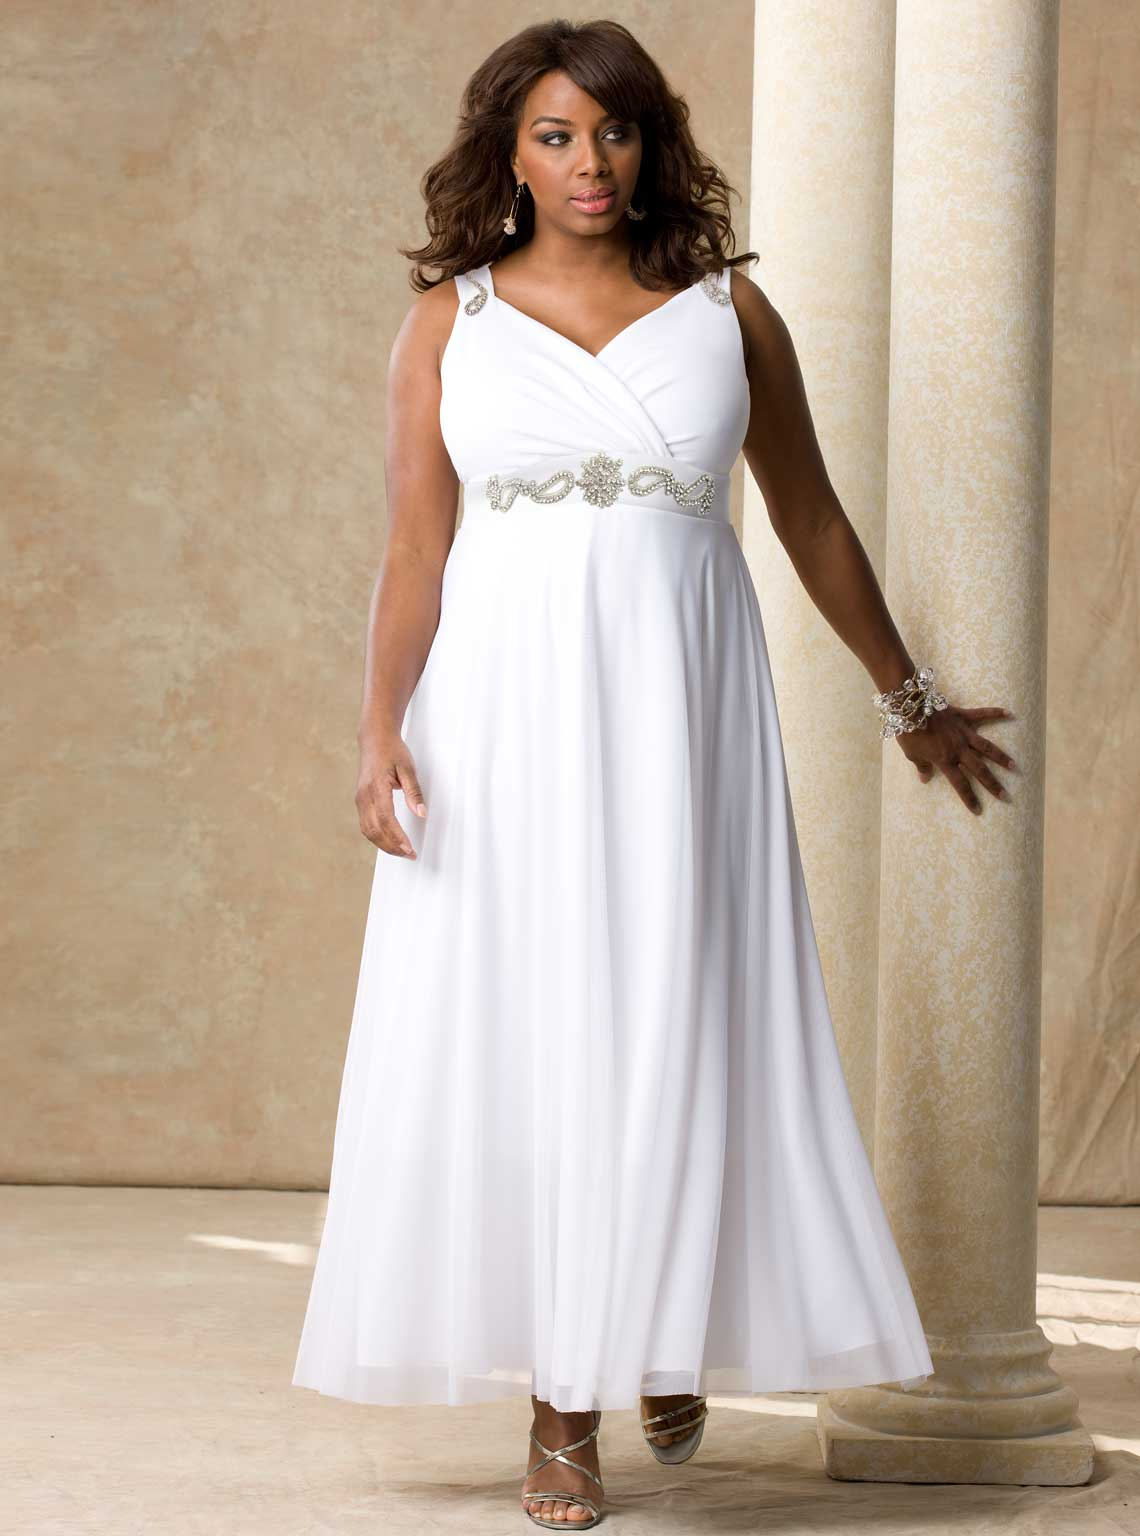 best wedding ideas searching for an affordable plus size With plus dresses for weddings